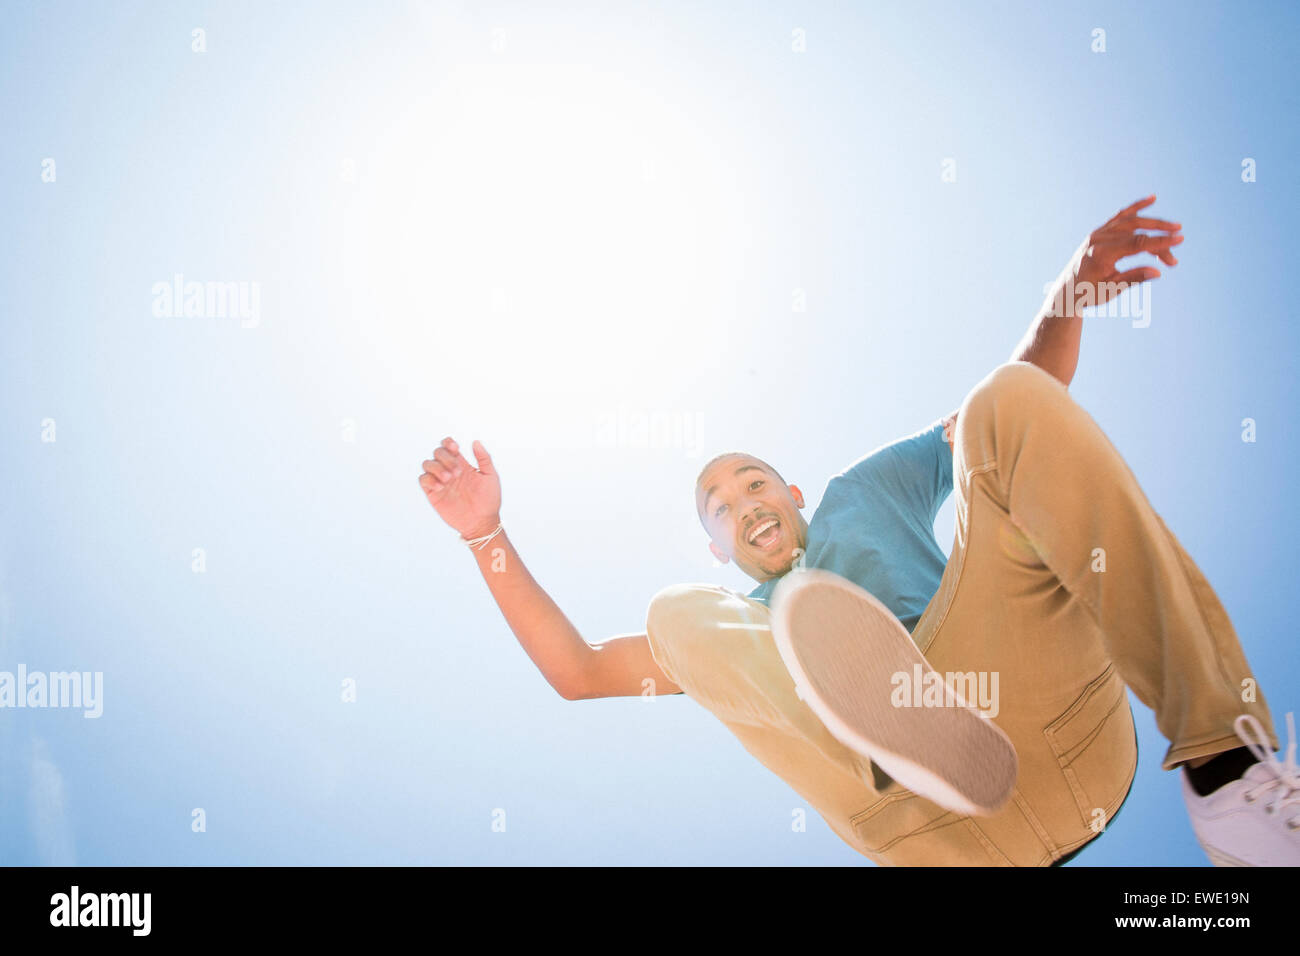 Parcour parkour young man jumping in the air - Stock Image